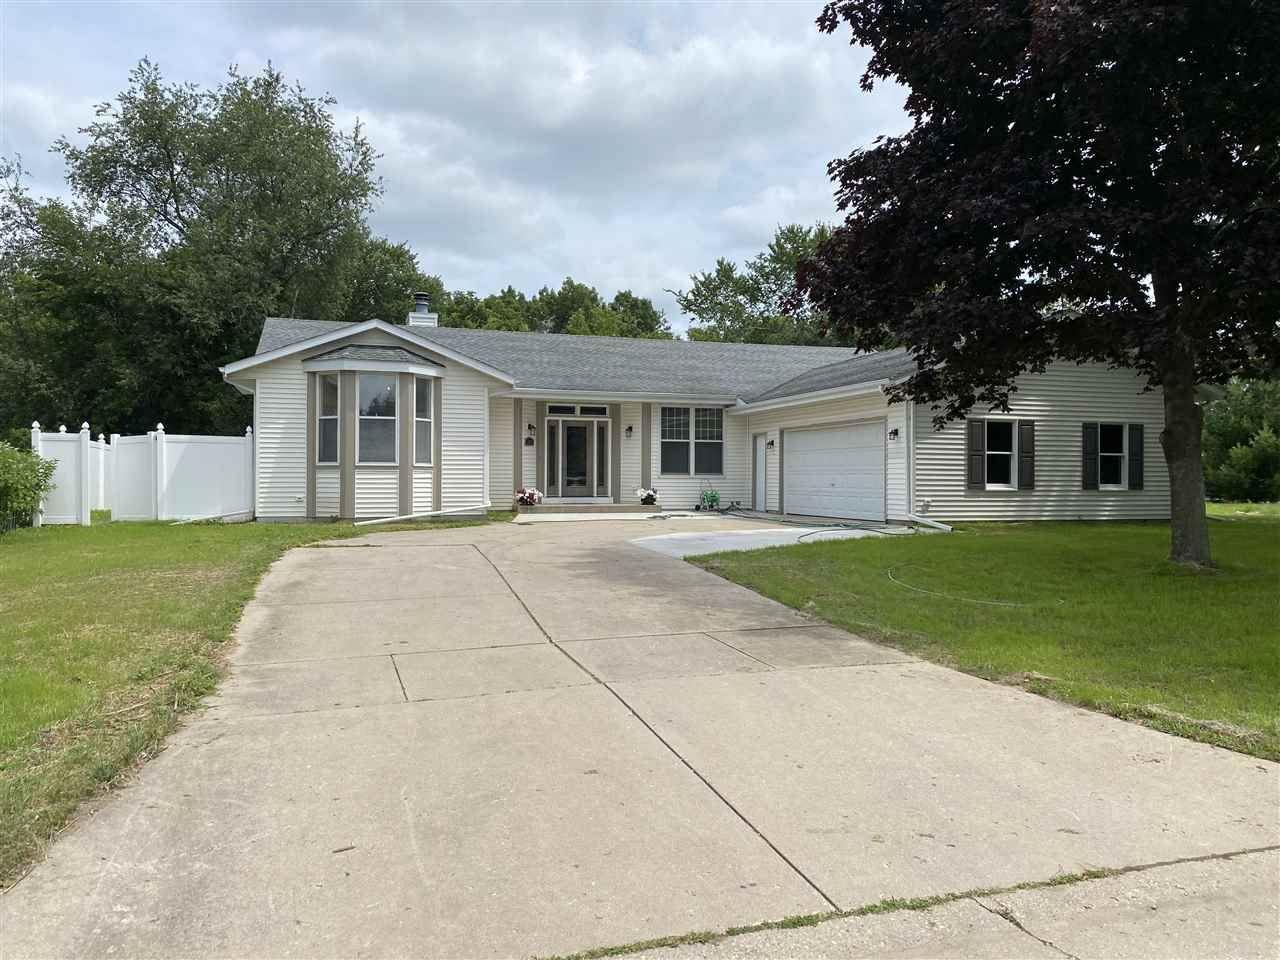 3025 Candlewood Dr, Janesville, WI 53546 - #: 1889400